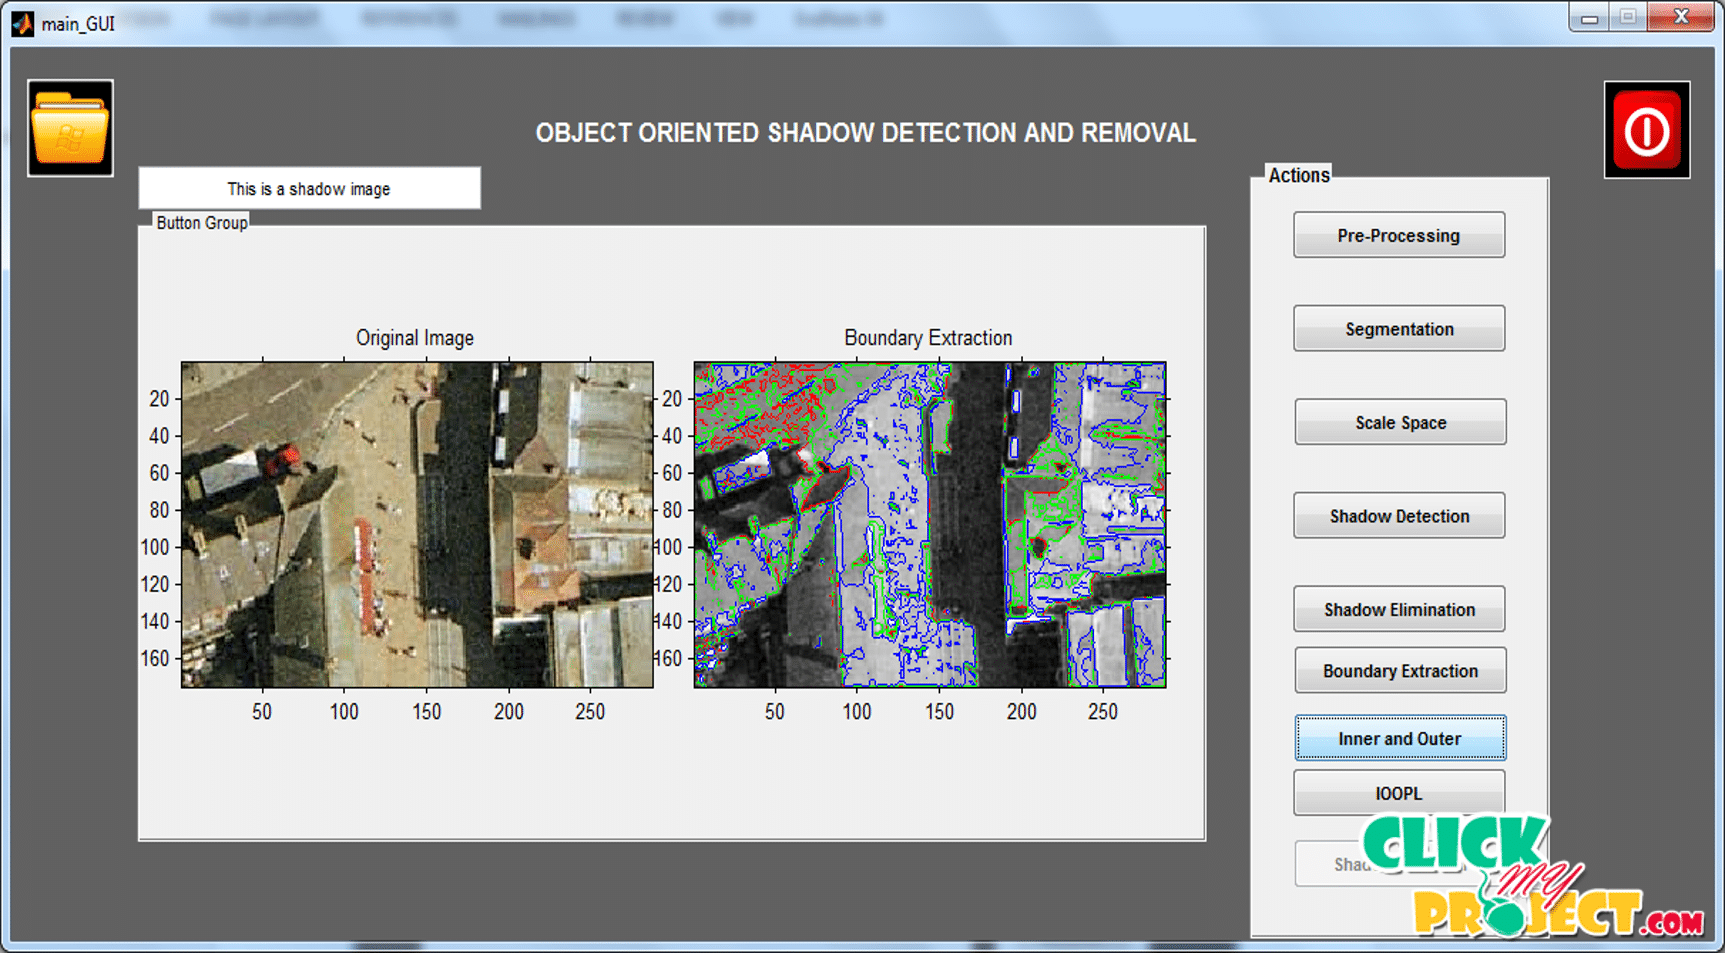 Object - Oriented Shadow Detection and Removal From Urban High-Resolution Remote Sensing I mages